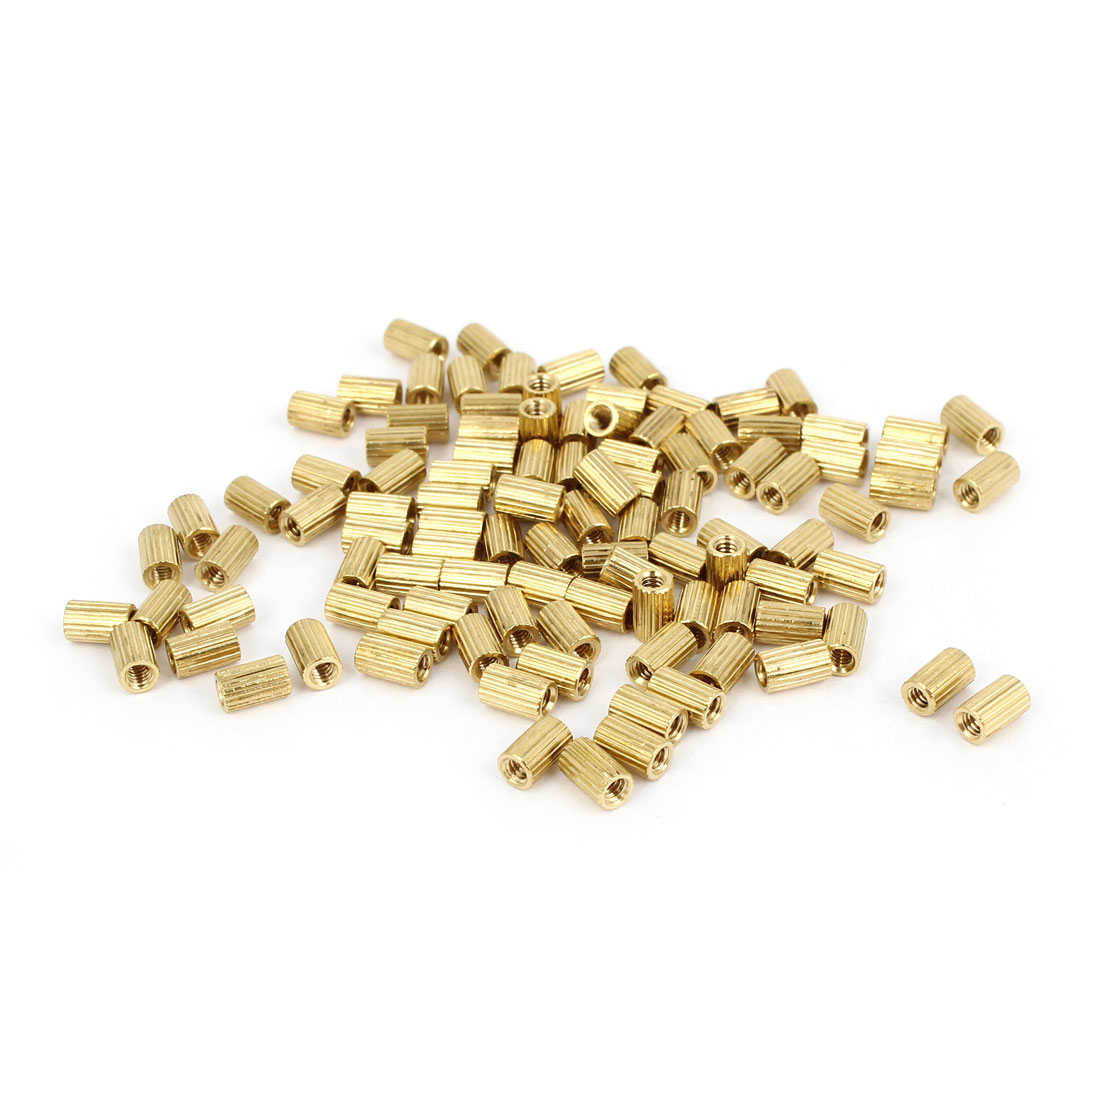 100 Pcs Female Threaded Pillars Brass Standoff Spacer Gold Tone M2x5mm